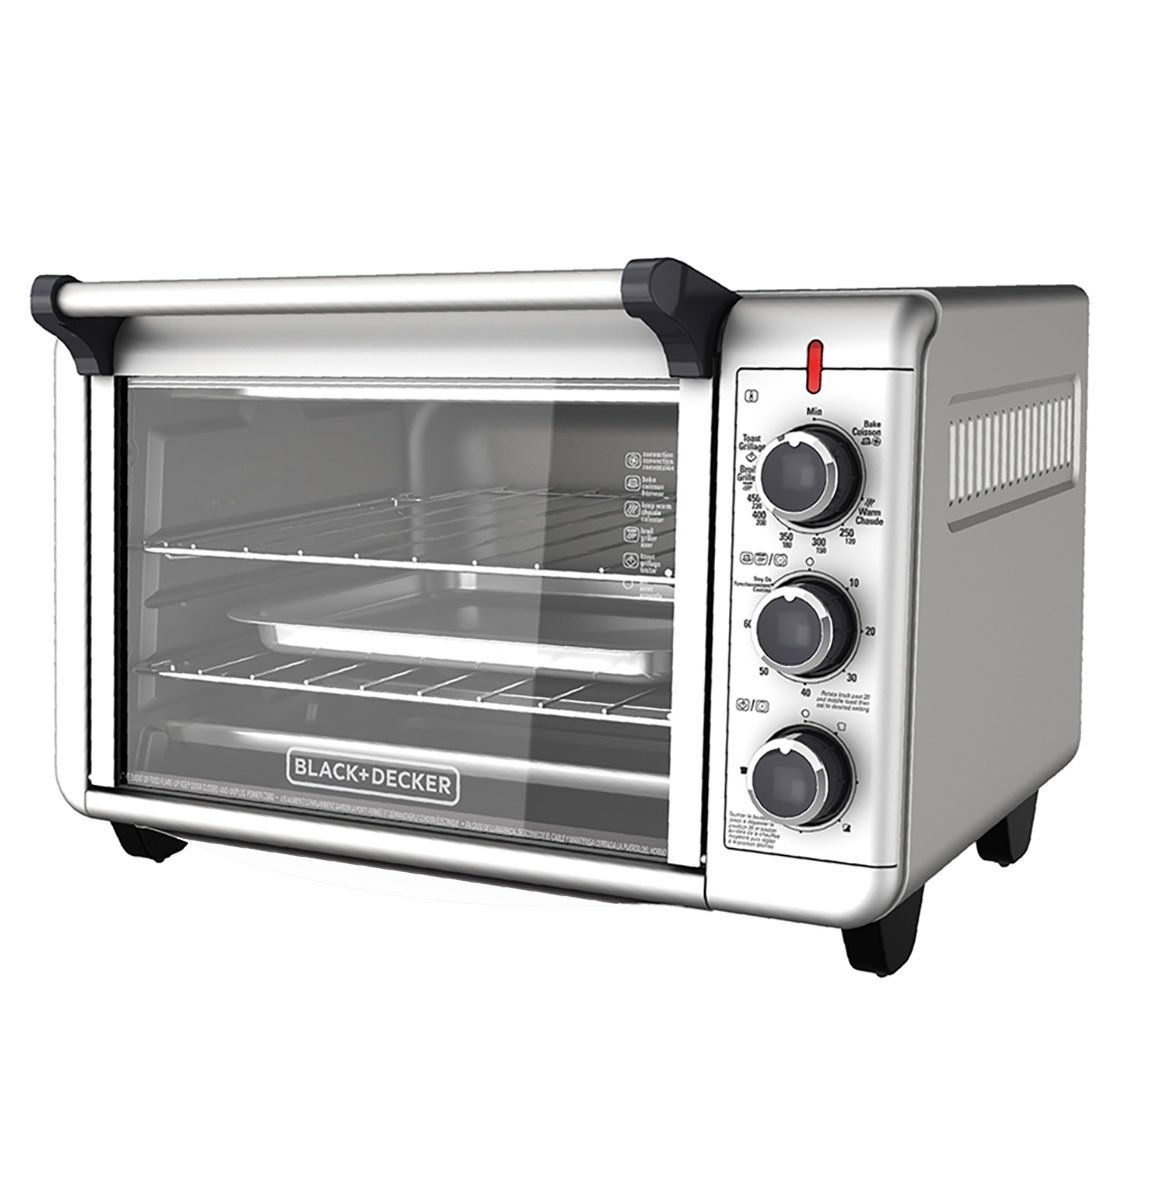 The 10 Best Toaster Ovens According To Customer Reviews